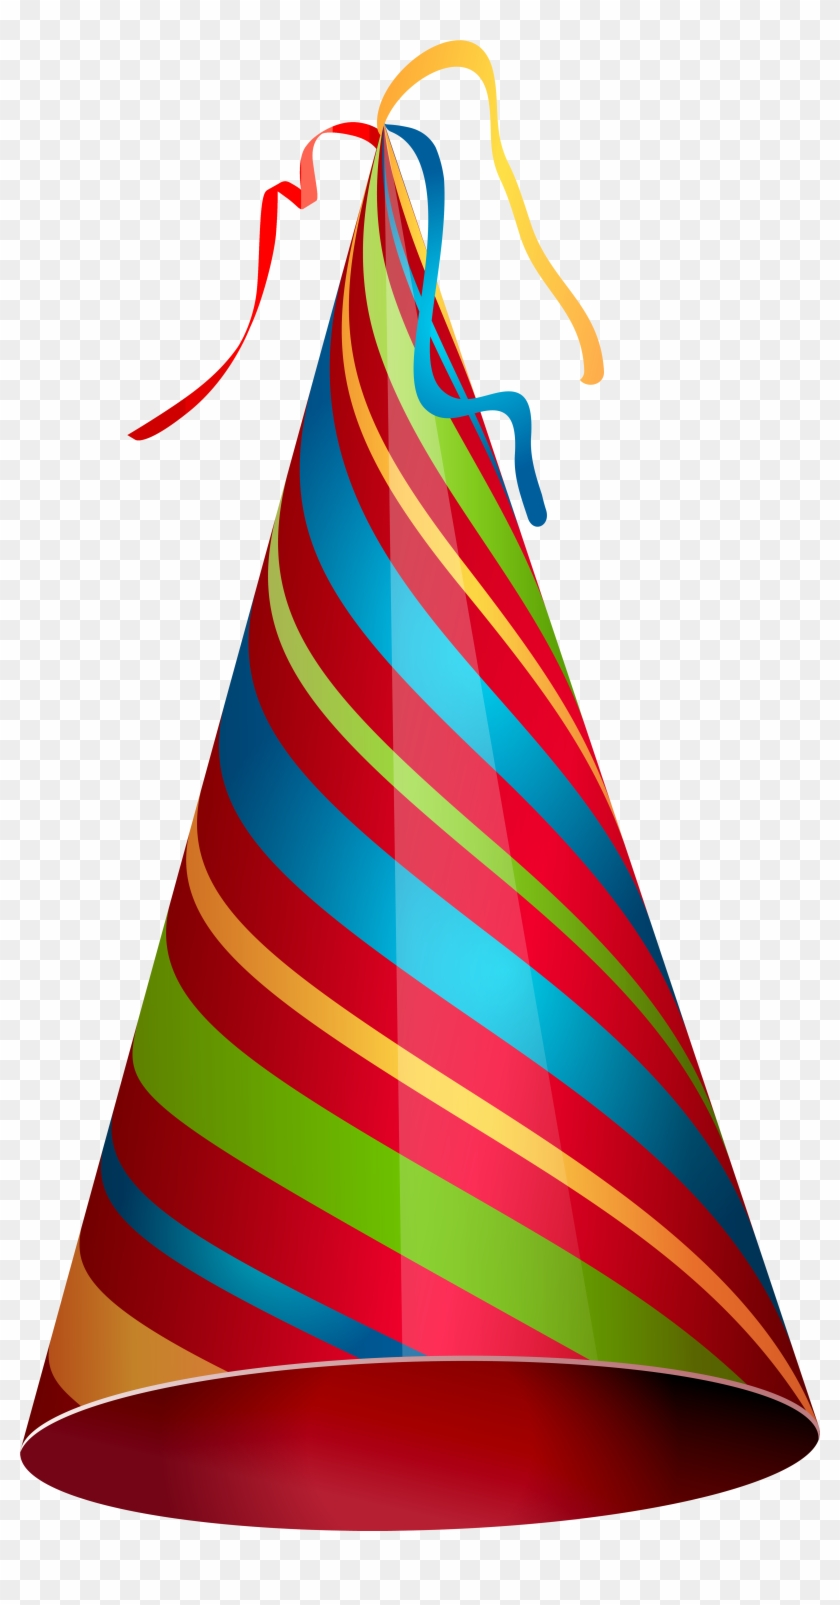 Birthday Party Hat Transparent Background #8778